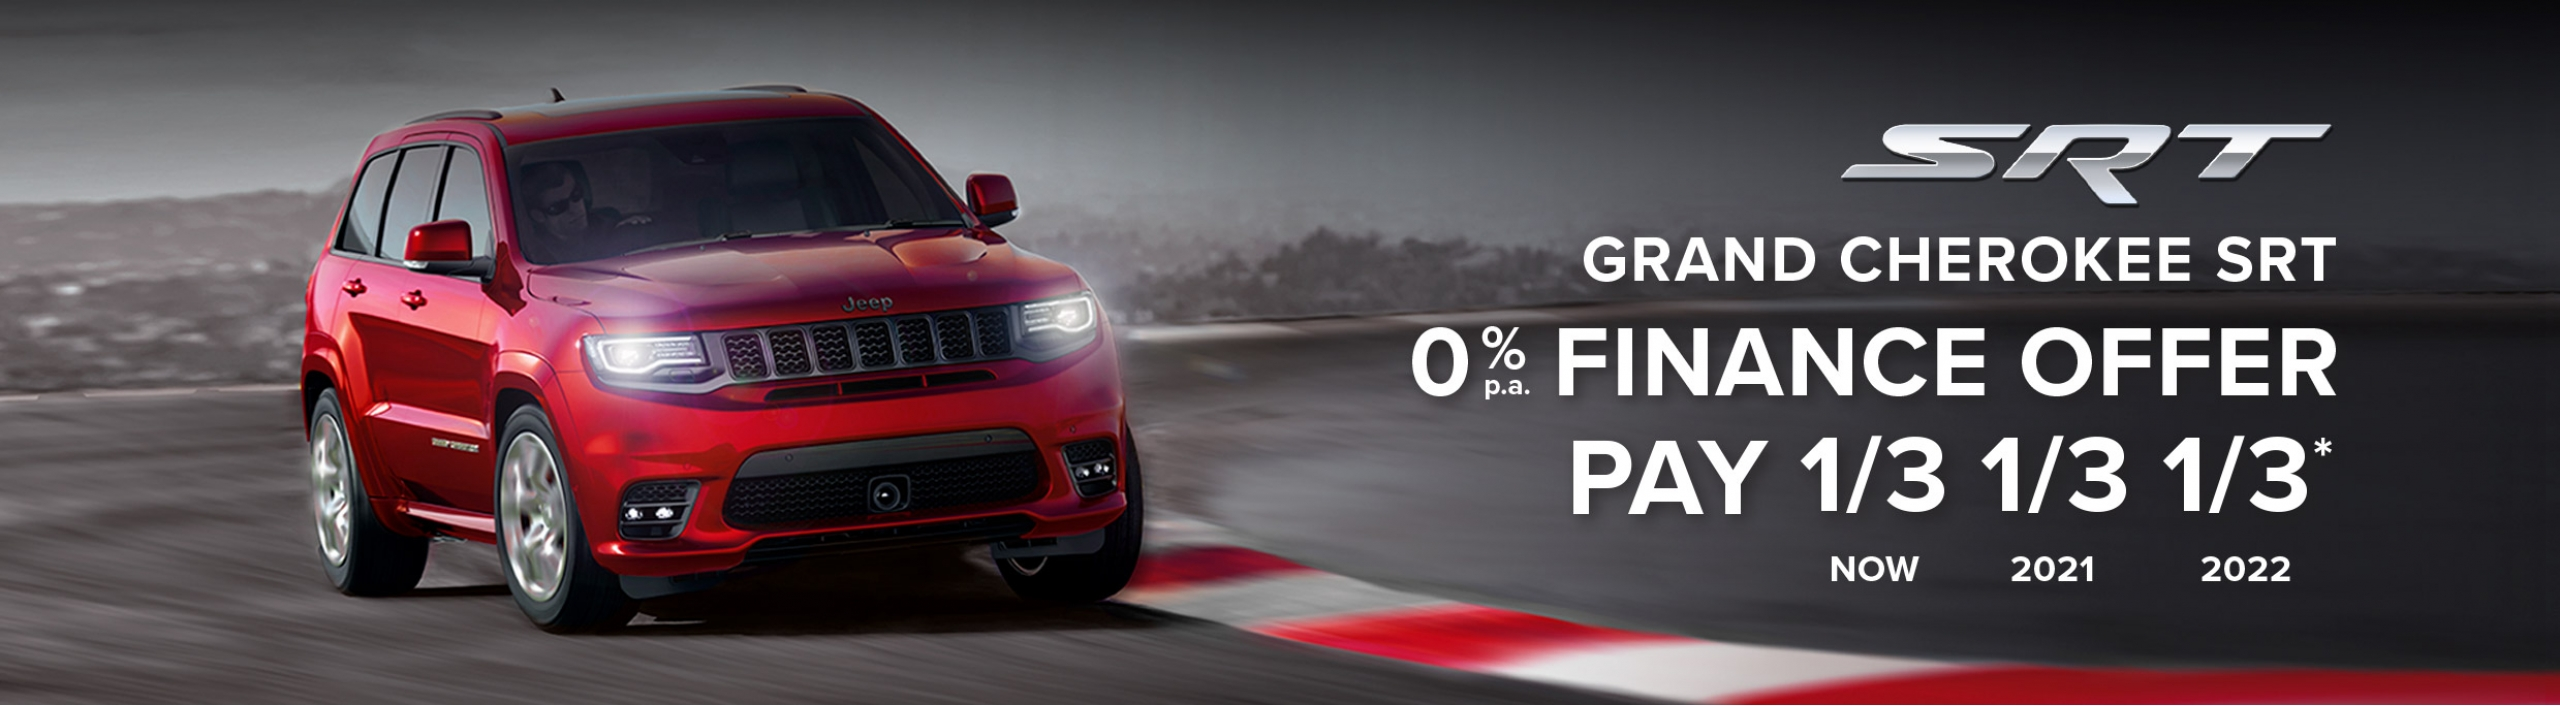 Jeep Grand Cherokee SRT 0% Finance offer